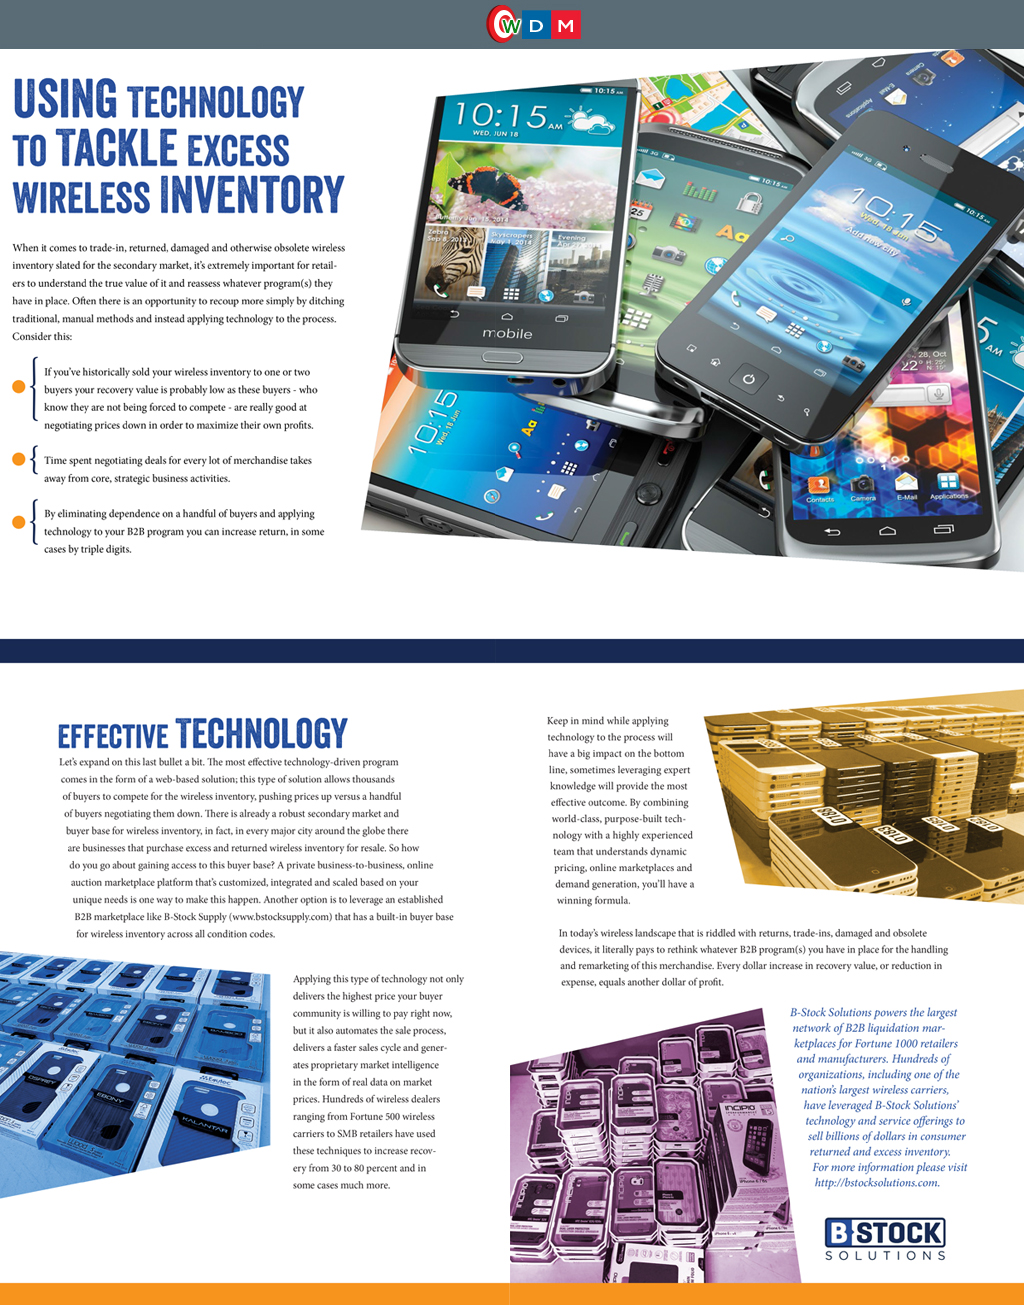 B Stock Solutions using technology to tackle excess wireless inventory